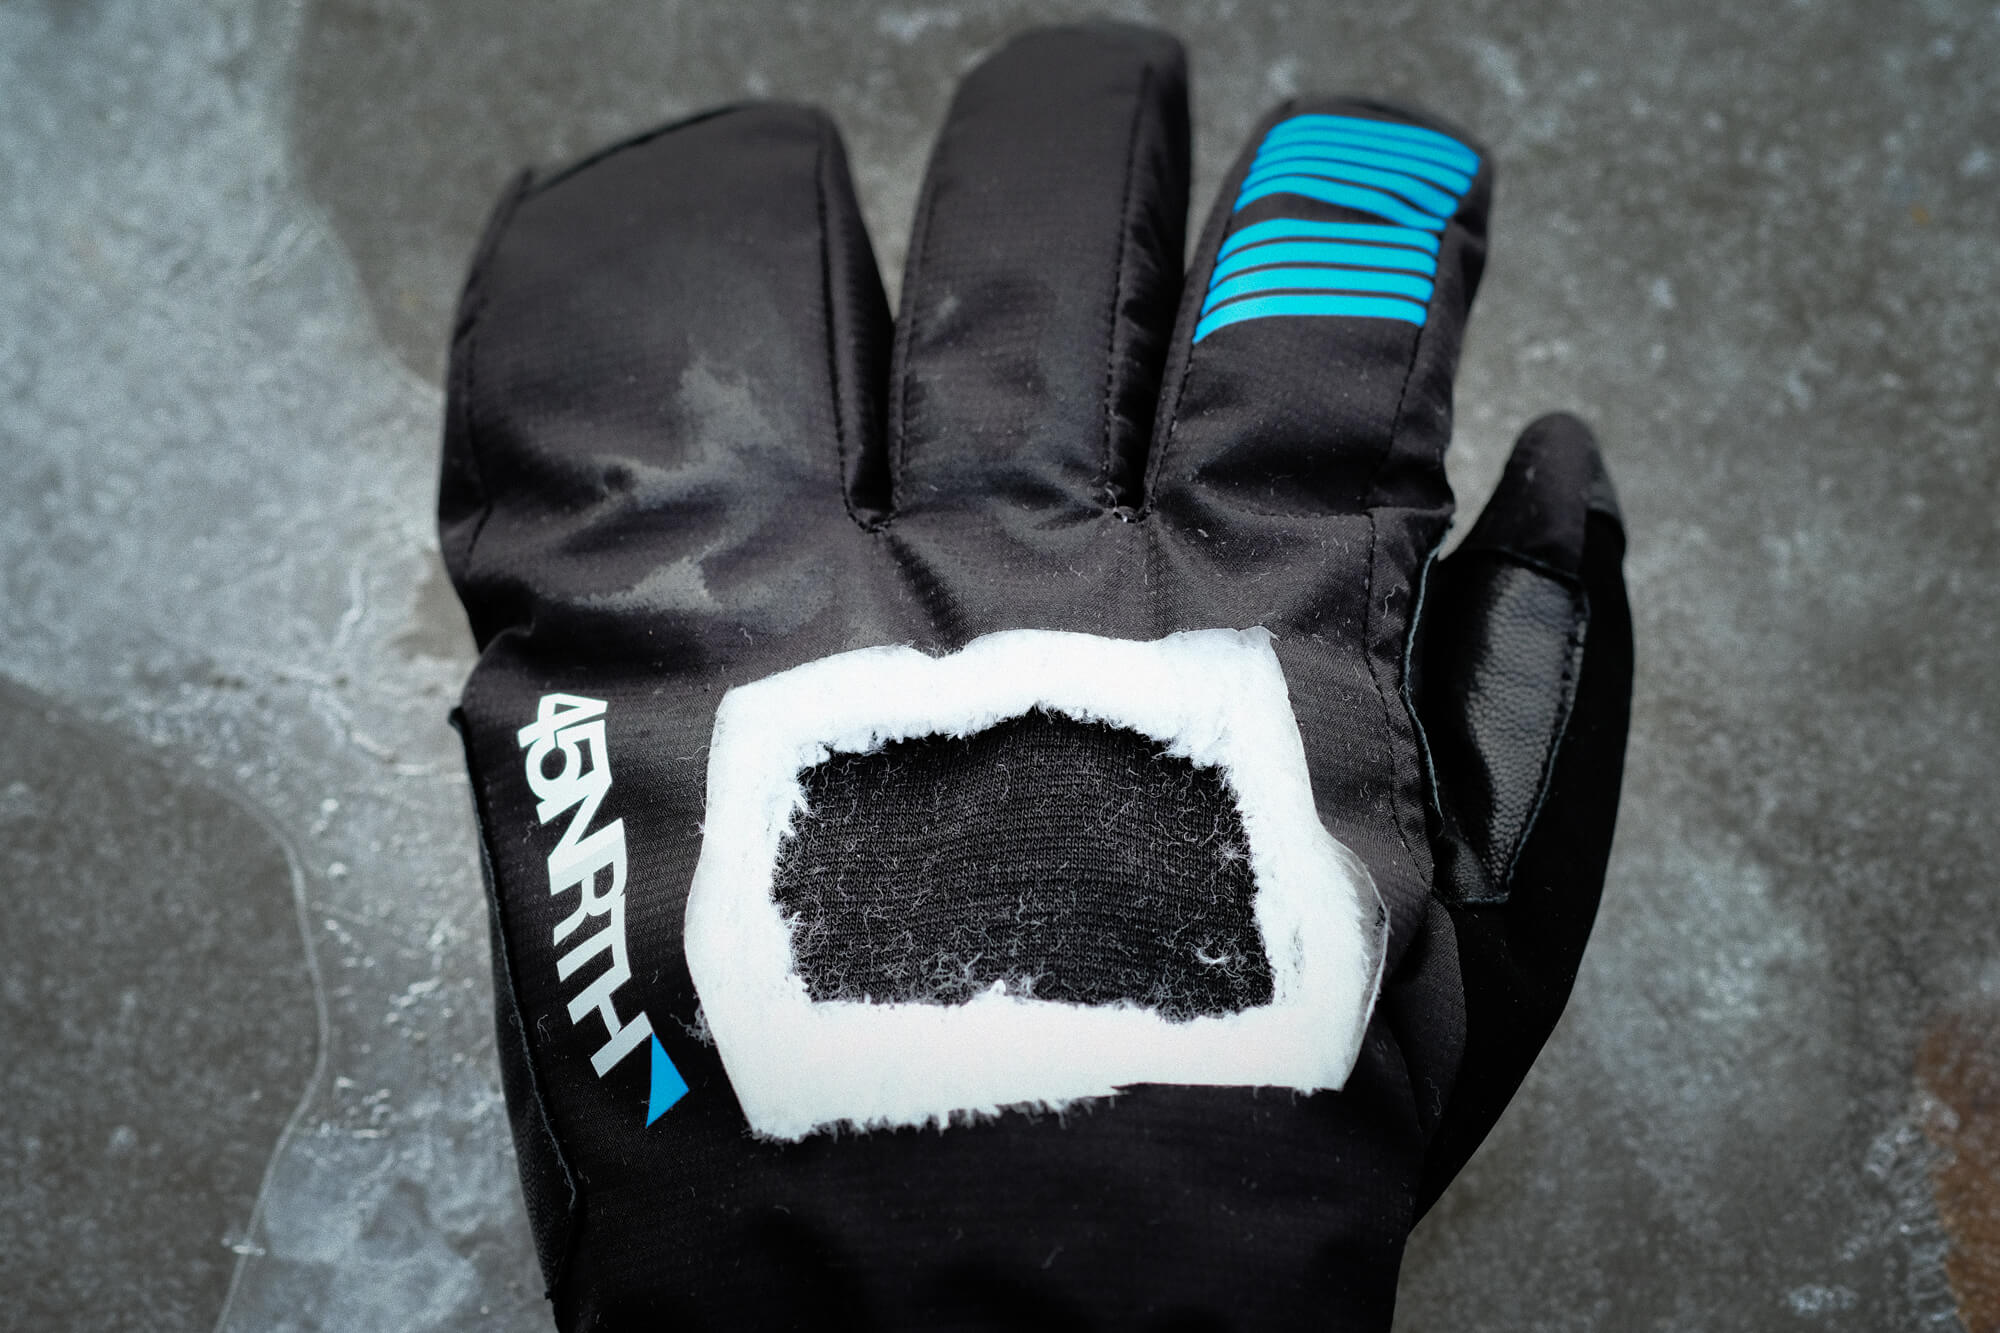 A 45NRTH Sturmfist 4 glove with a cross-section of the back of hand removed to show layers of material and protection